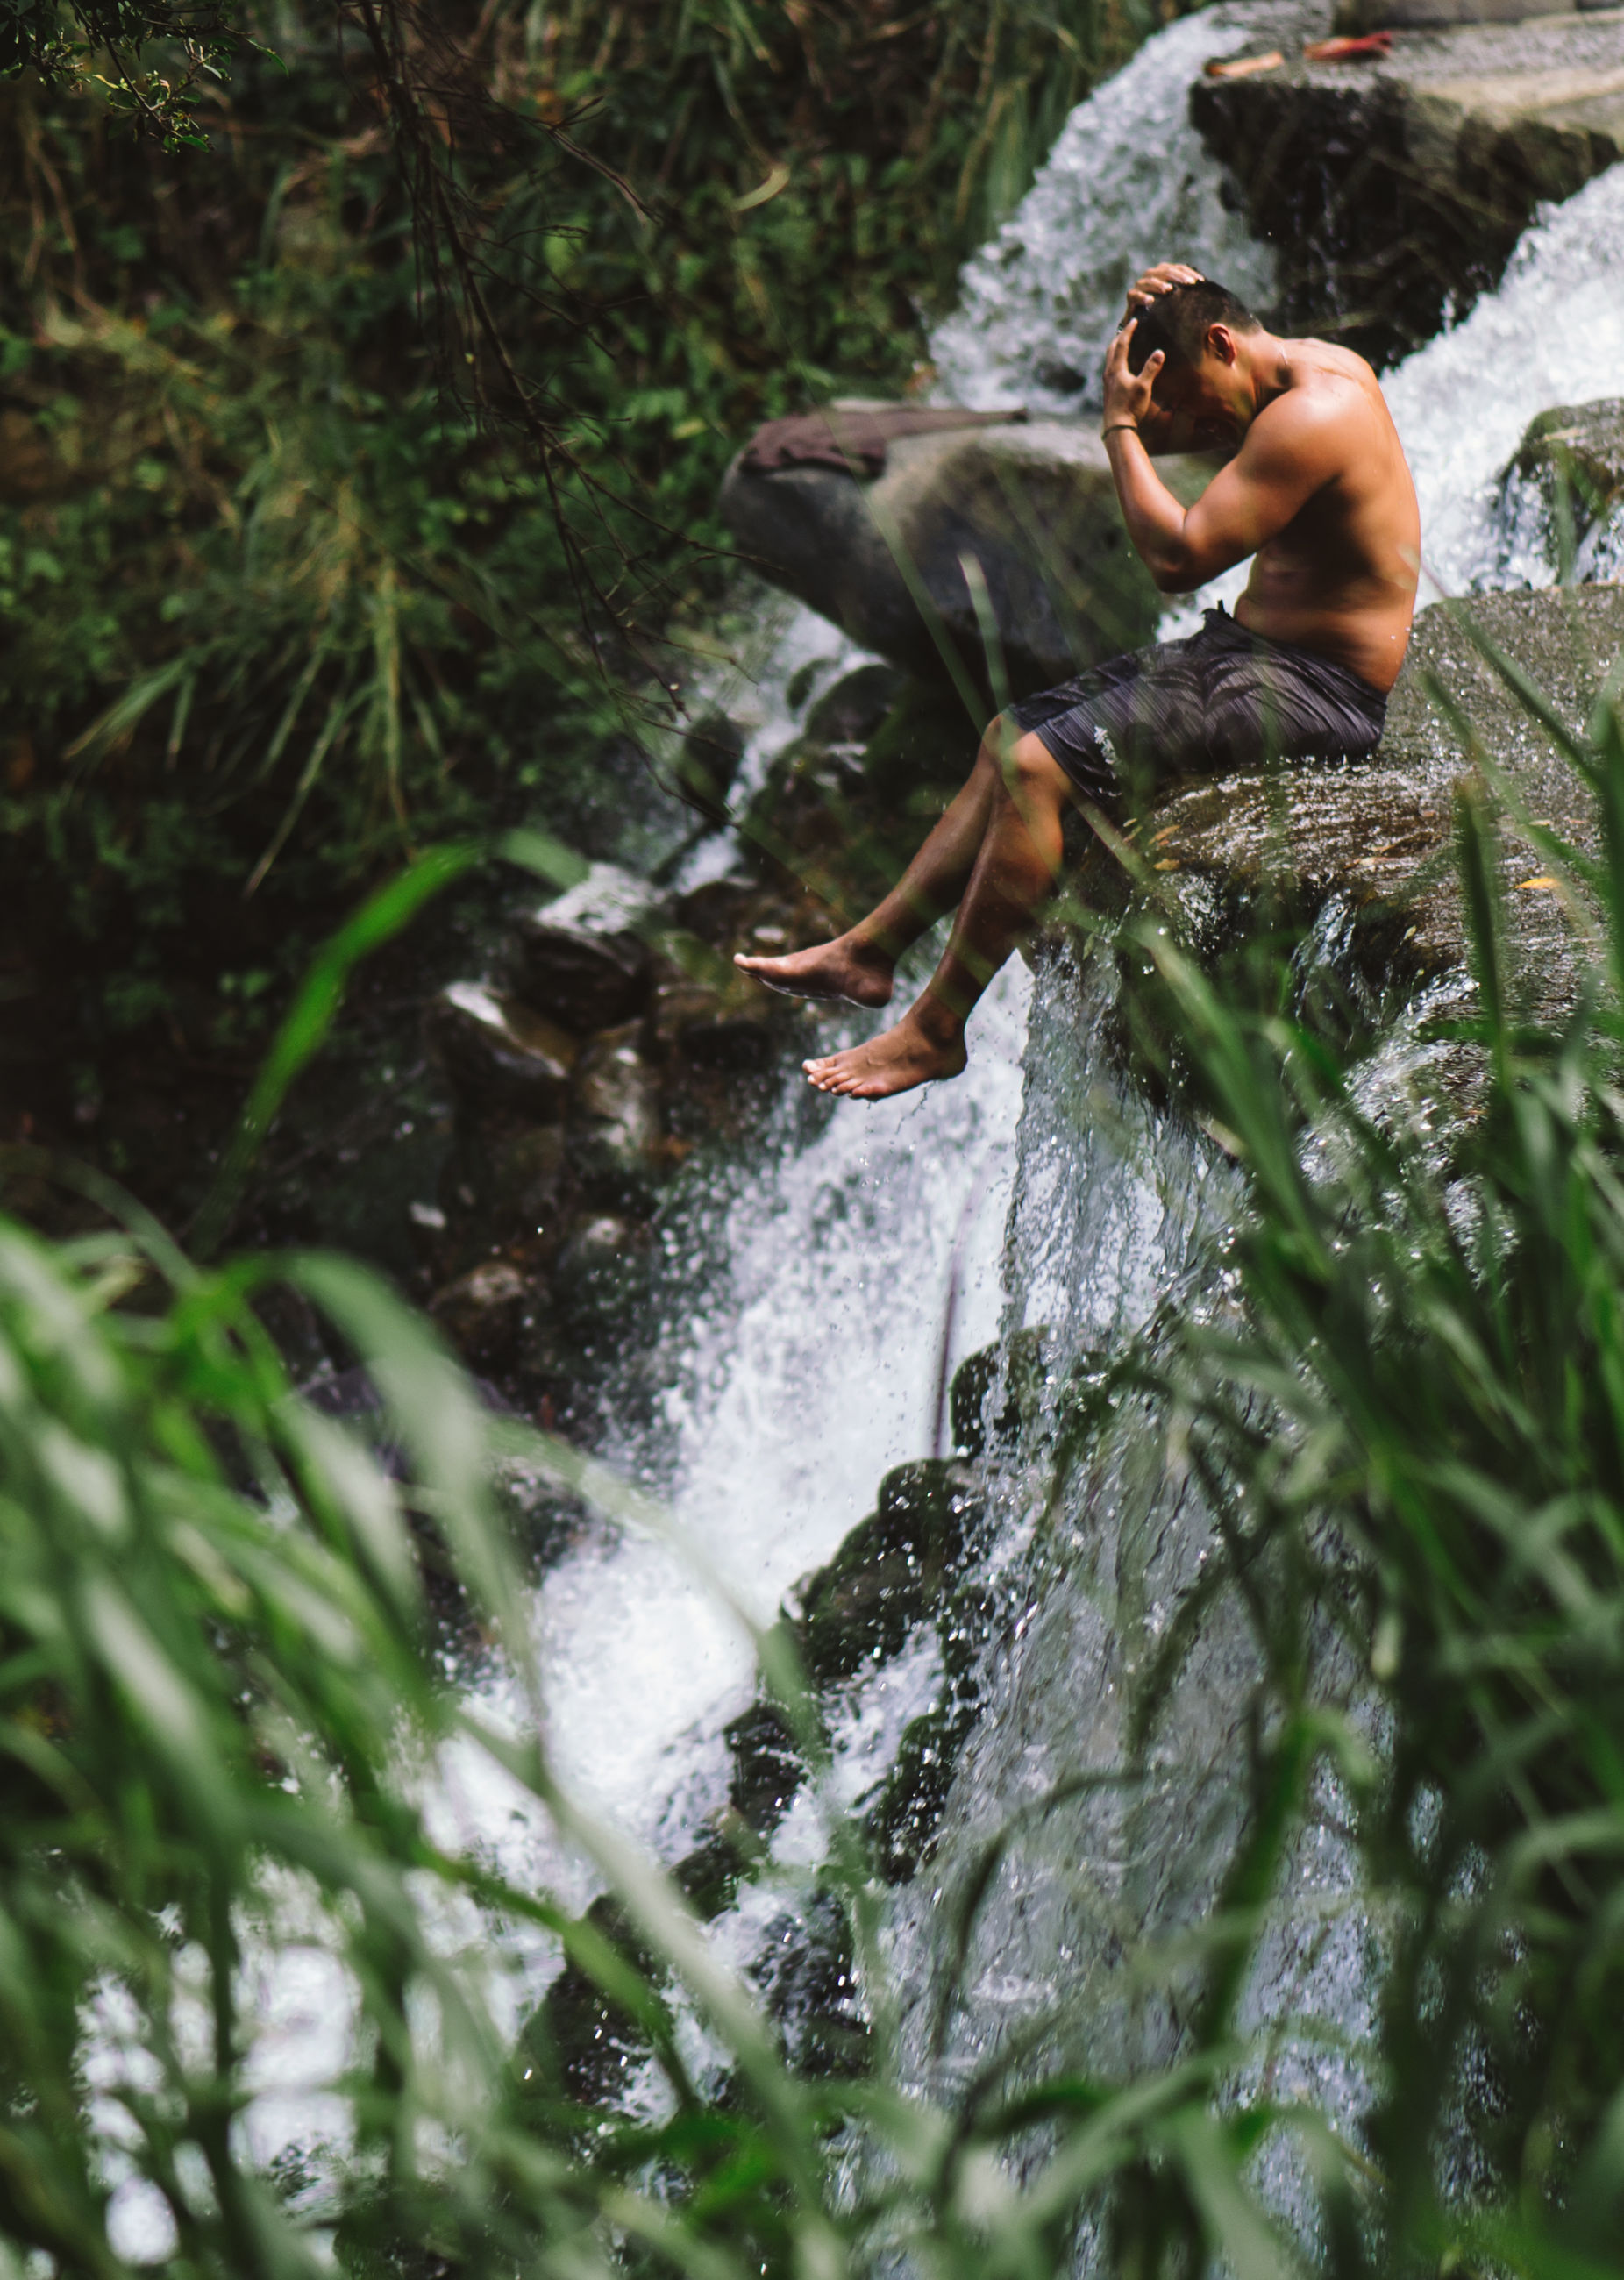 water, rock - object, real people, motion, nature, outdoors, day, leisure activity, waterfall, one person, lifestyles, men, full length, beauty in nature, tree, mammal, young adult, people